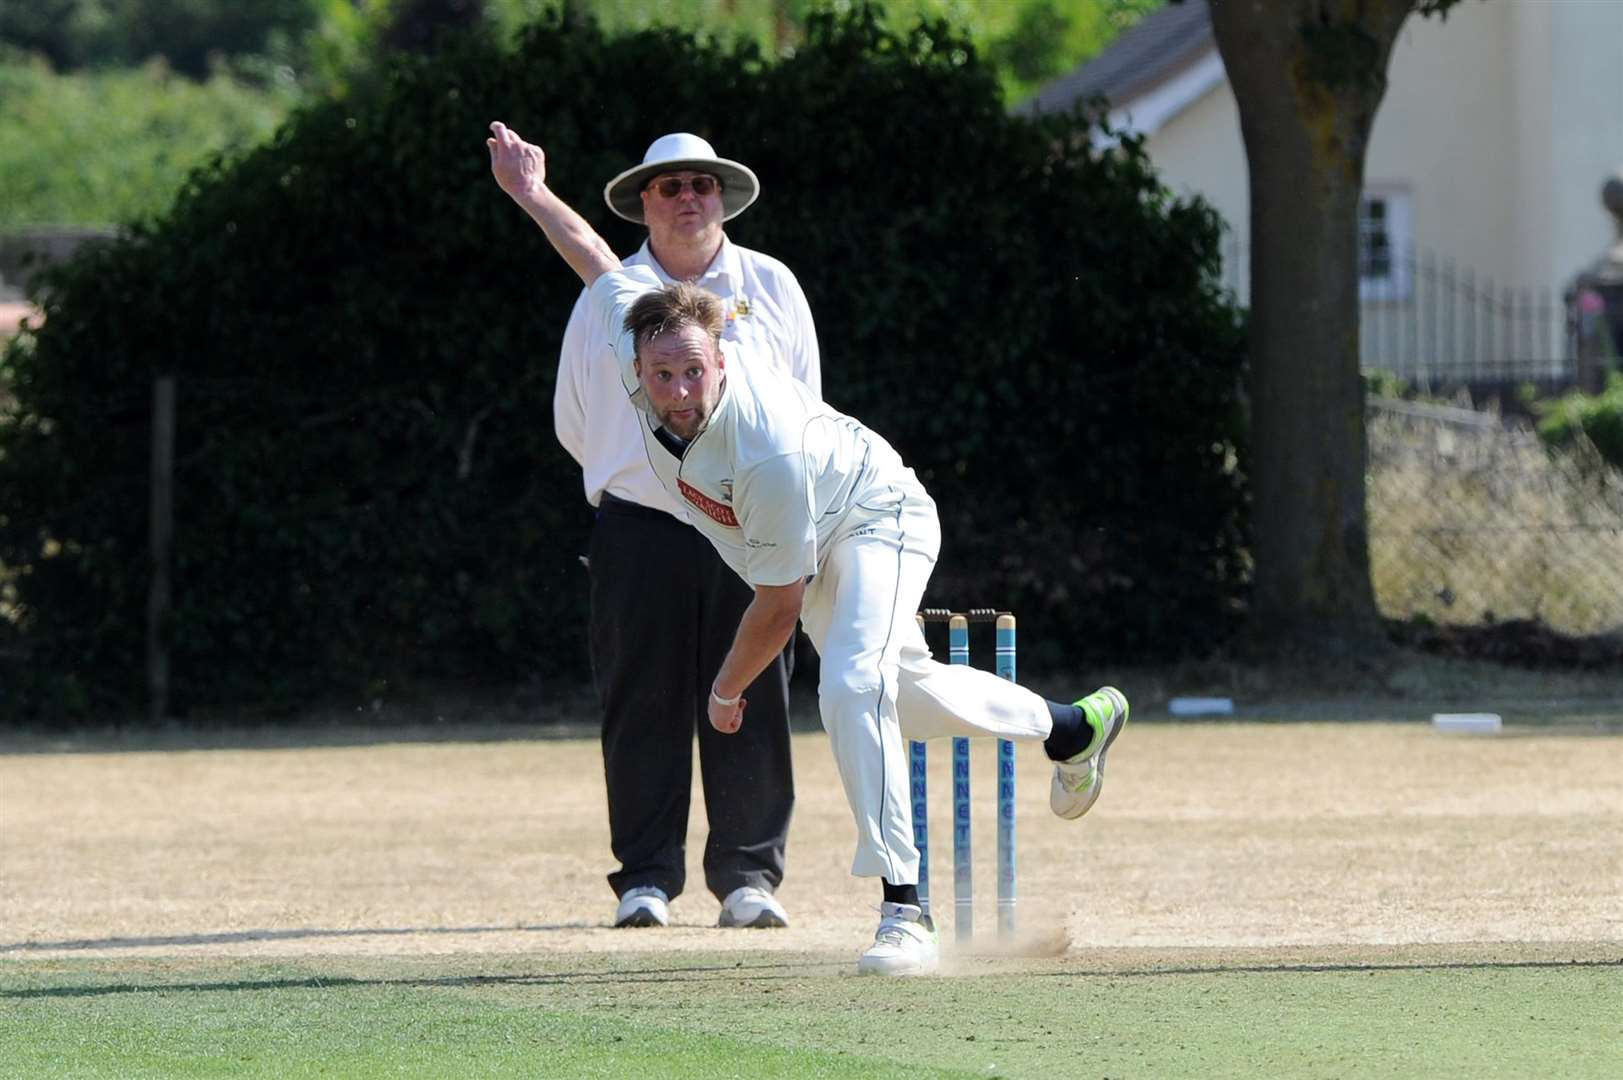 CRICKET - Worlington (Bowling) v Foxton in Last 16 of the National Village Cup...Pictured: Chris Tunstall ....PICTURE: Mecha Morton. .. (2930111)